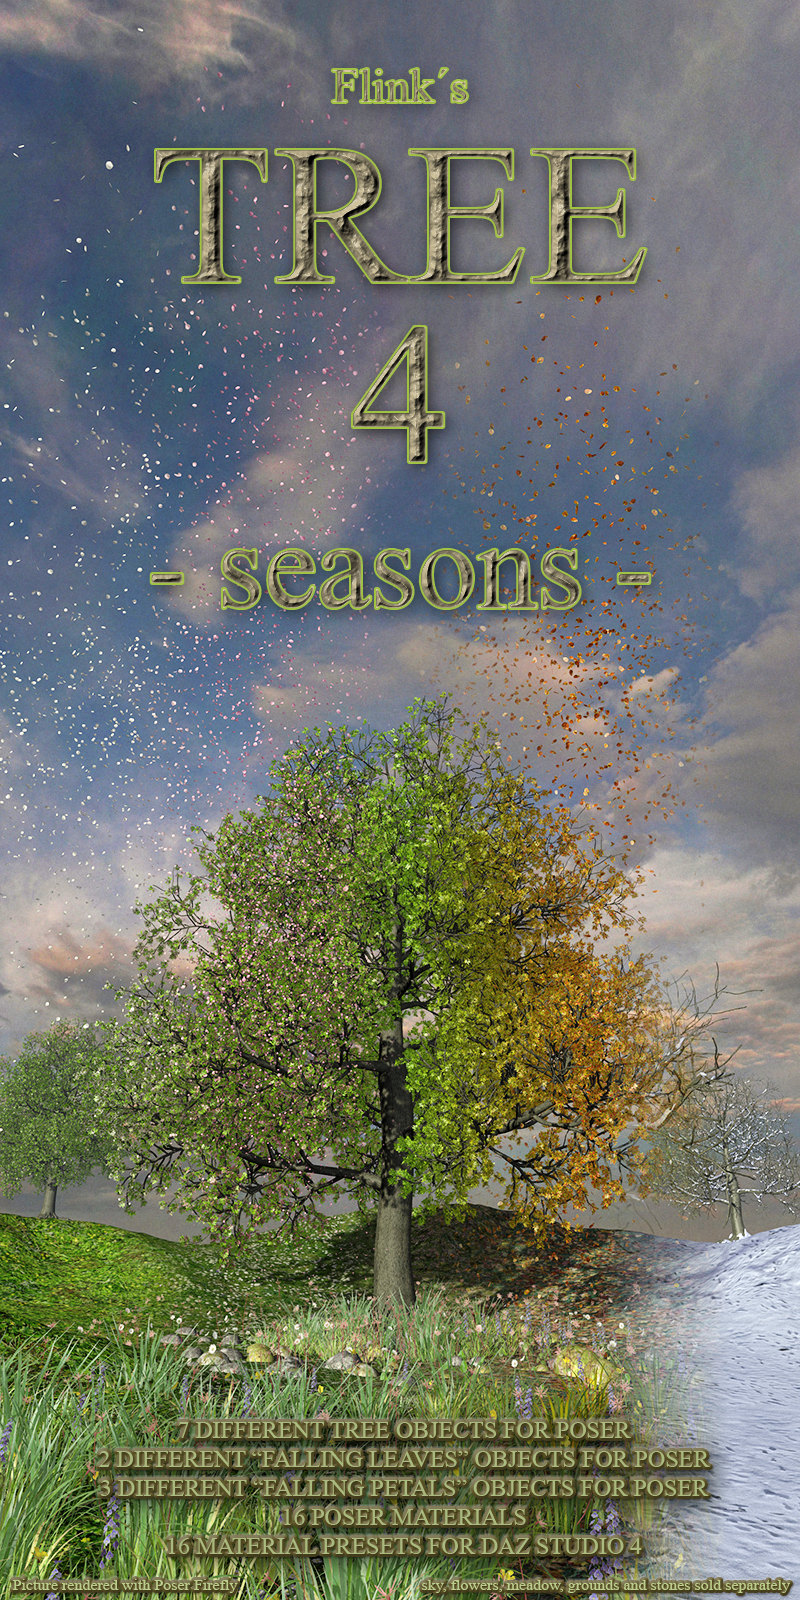 Flinks Tree 4 -seasons-